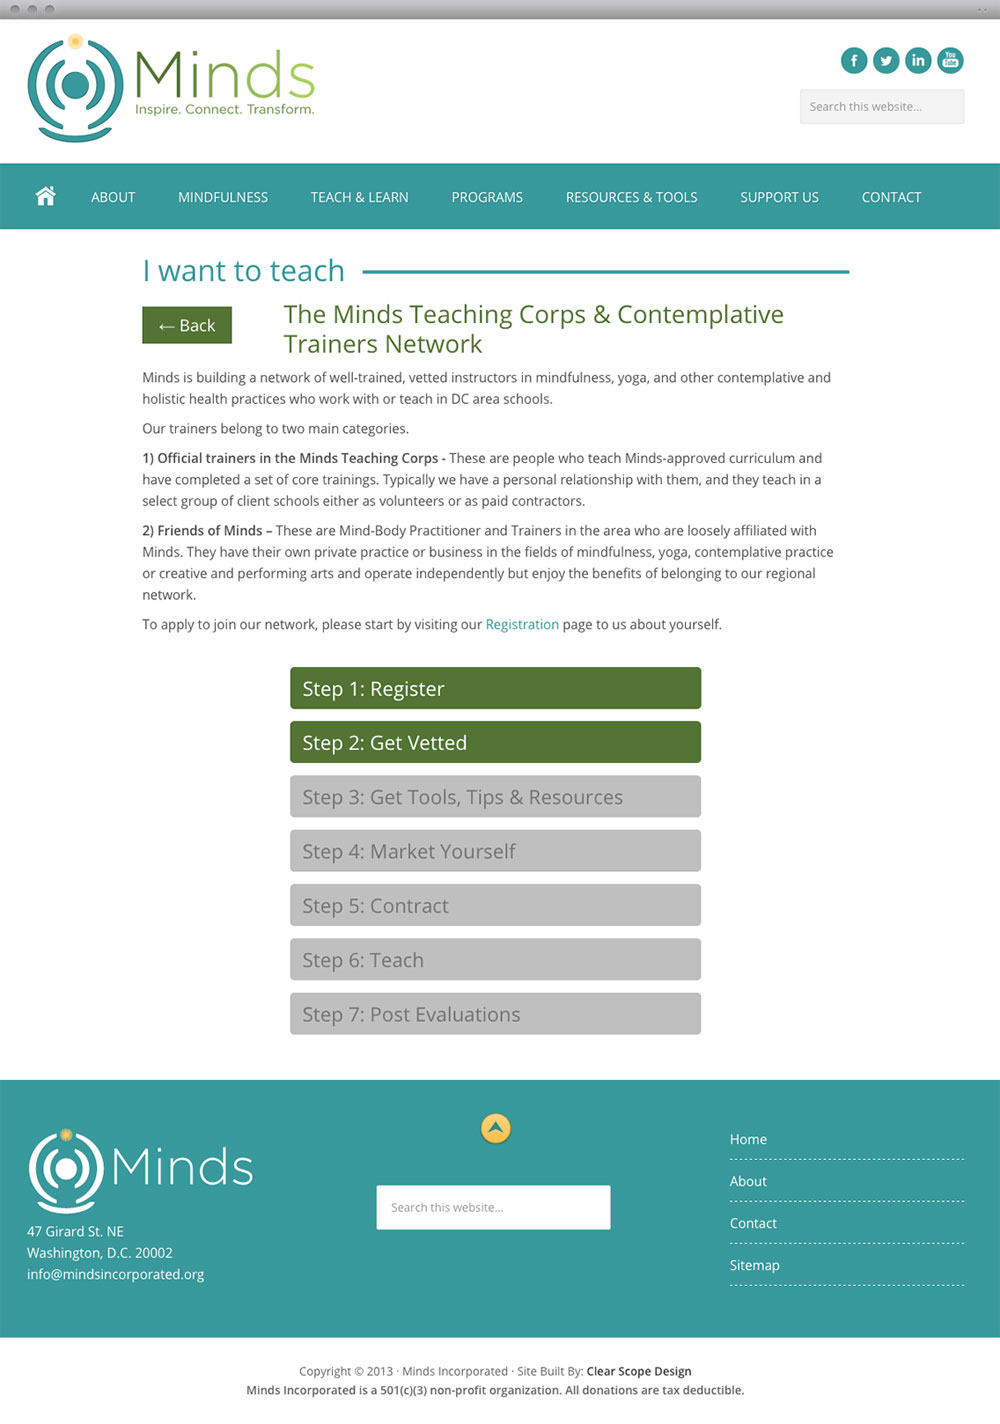 Minds Content Page